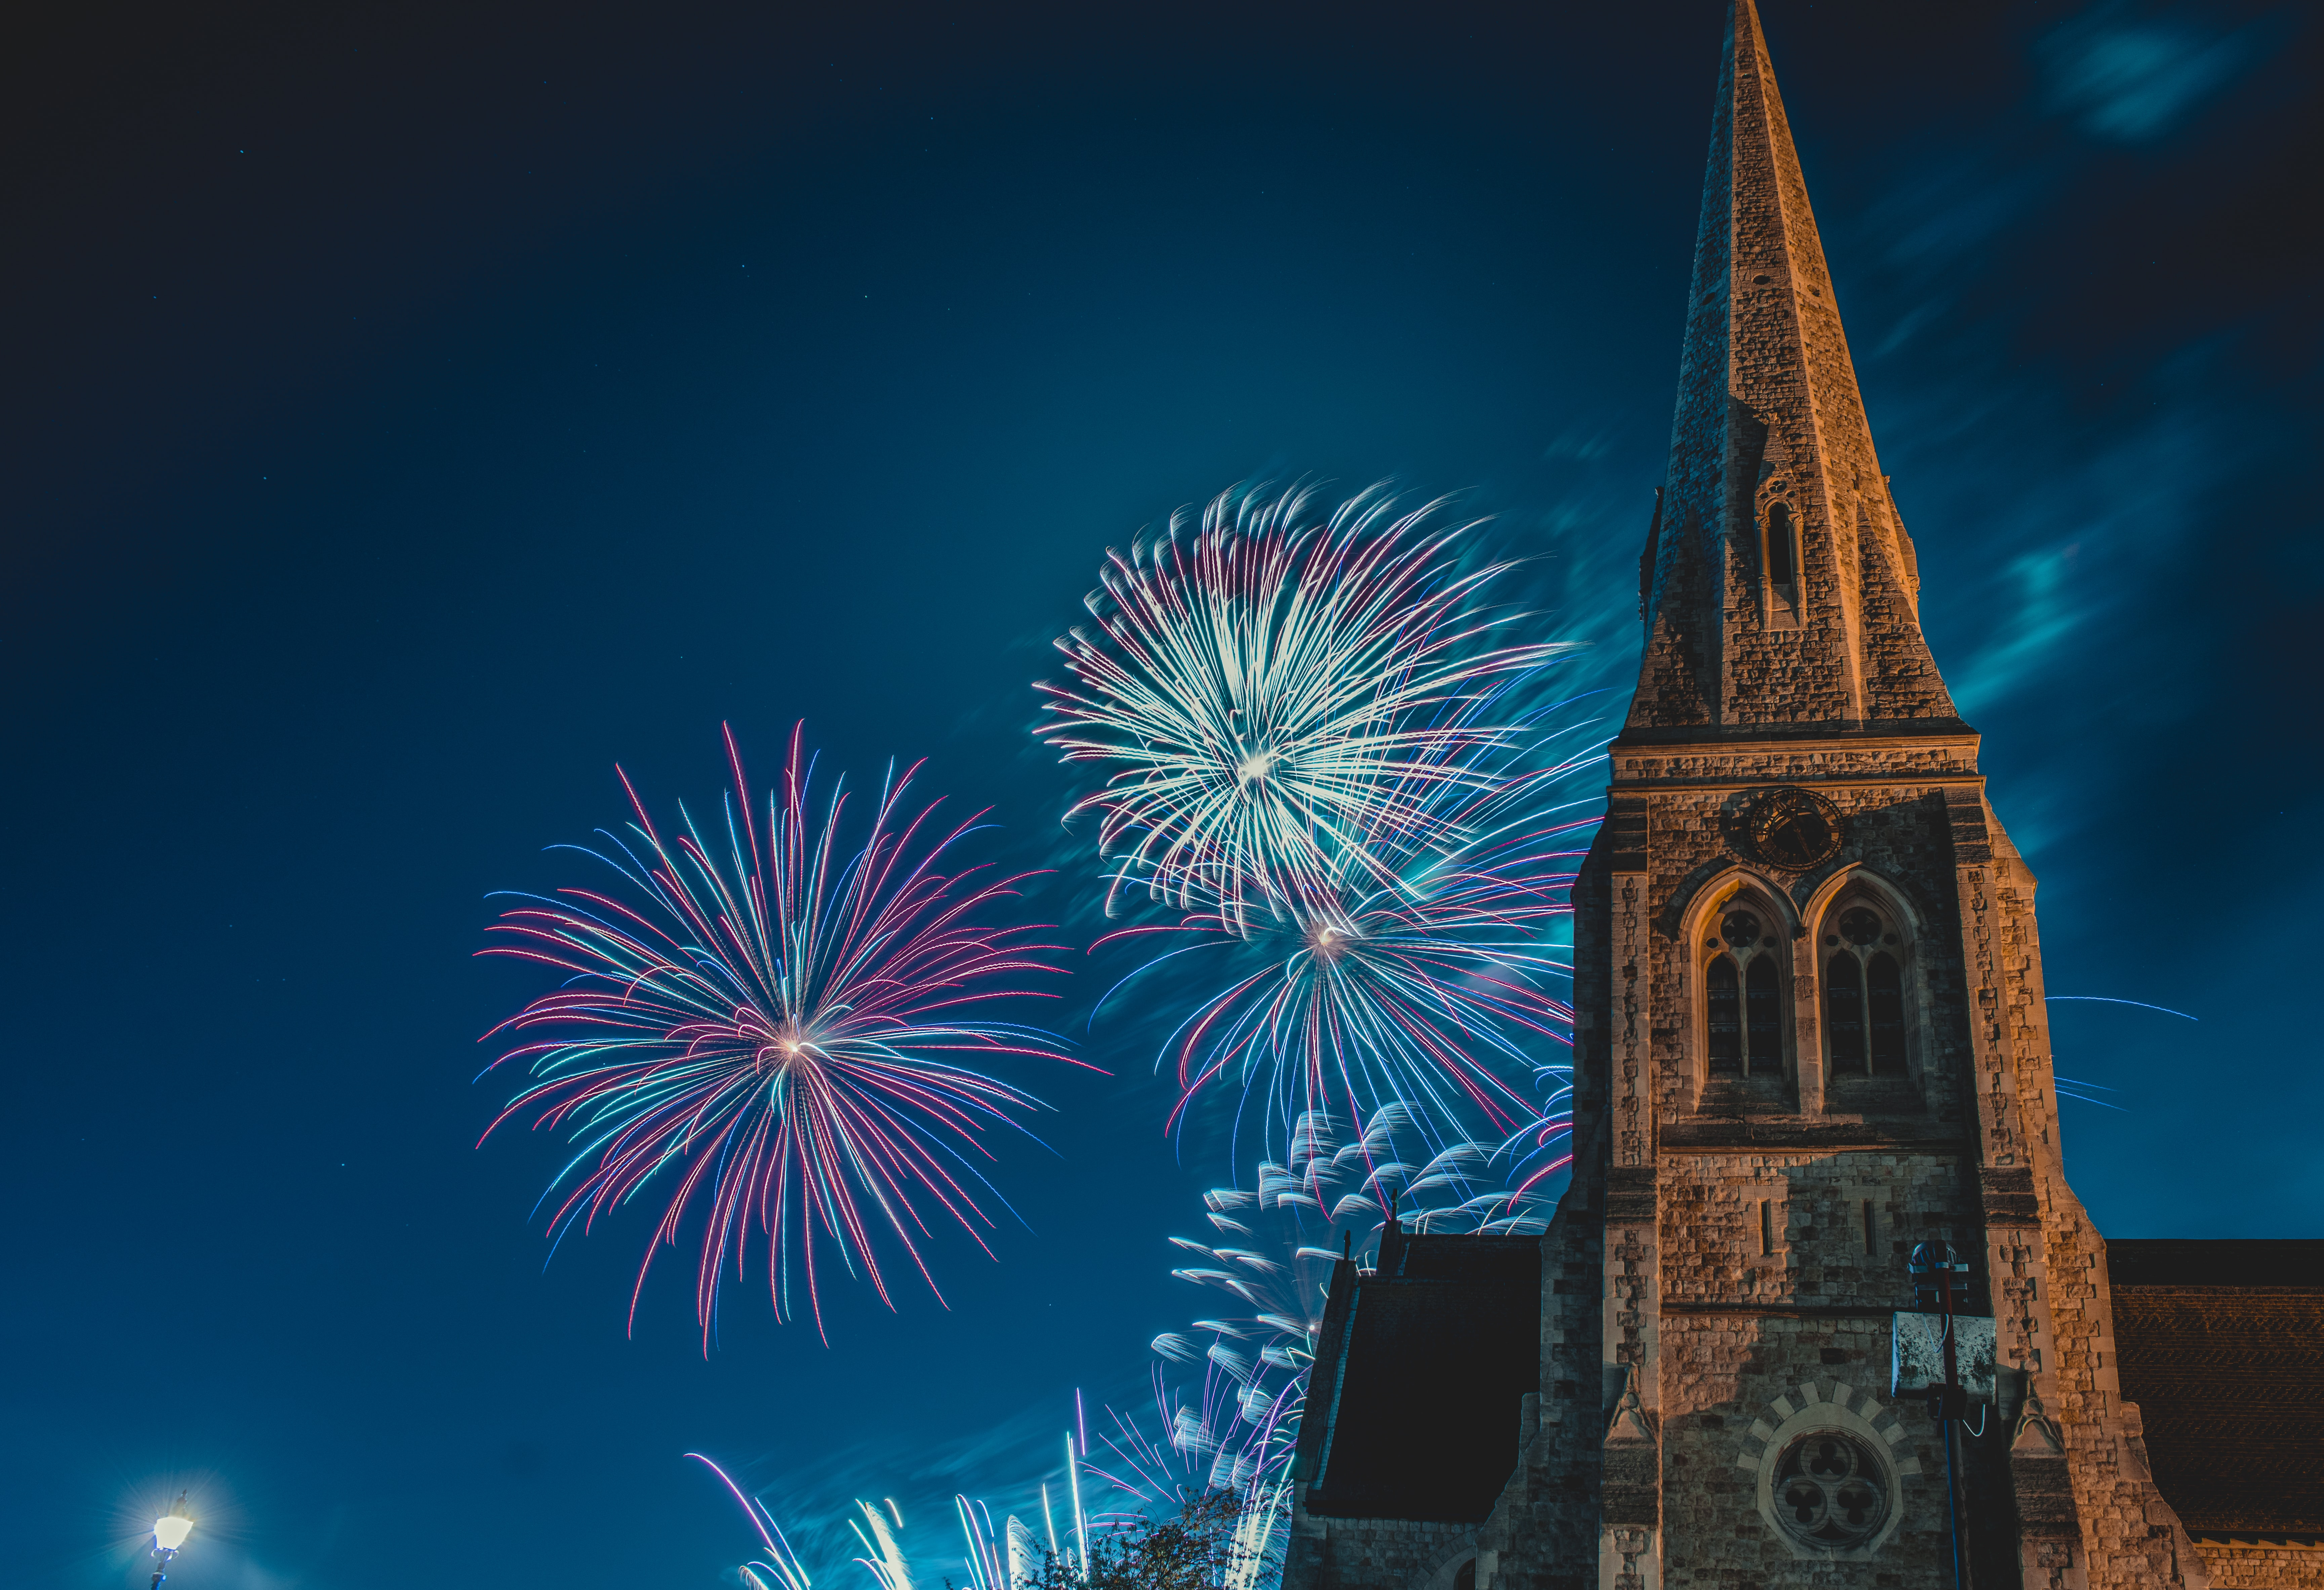 photo of pointed-edge church with fireworks